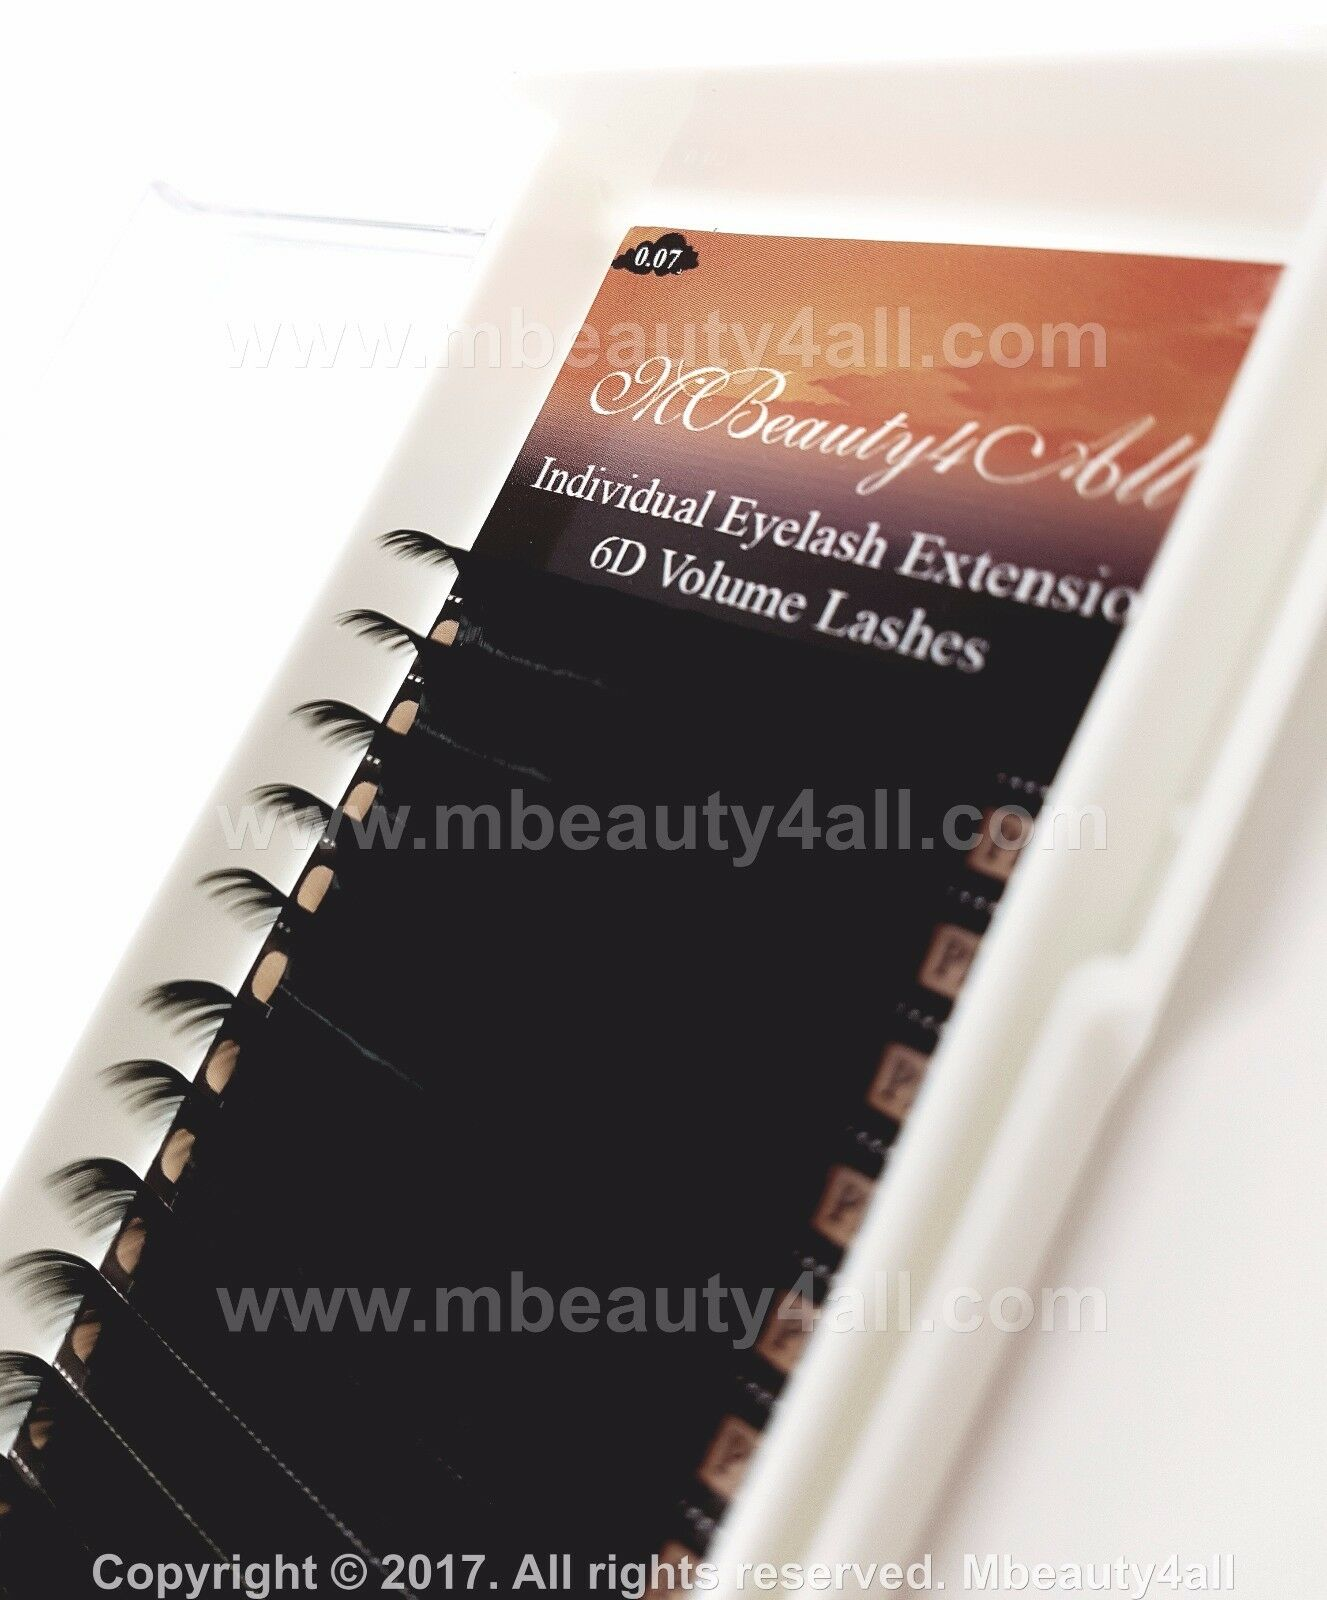 771cc829309 Mbeauty4all Russian Volume Lashes 2d-9d Individual Eyelash Extensions 0.05  for sale online   eBay